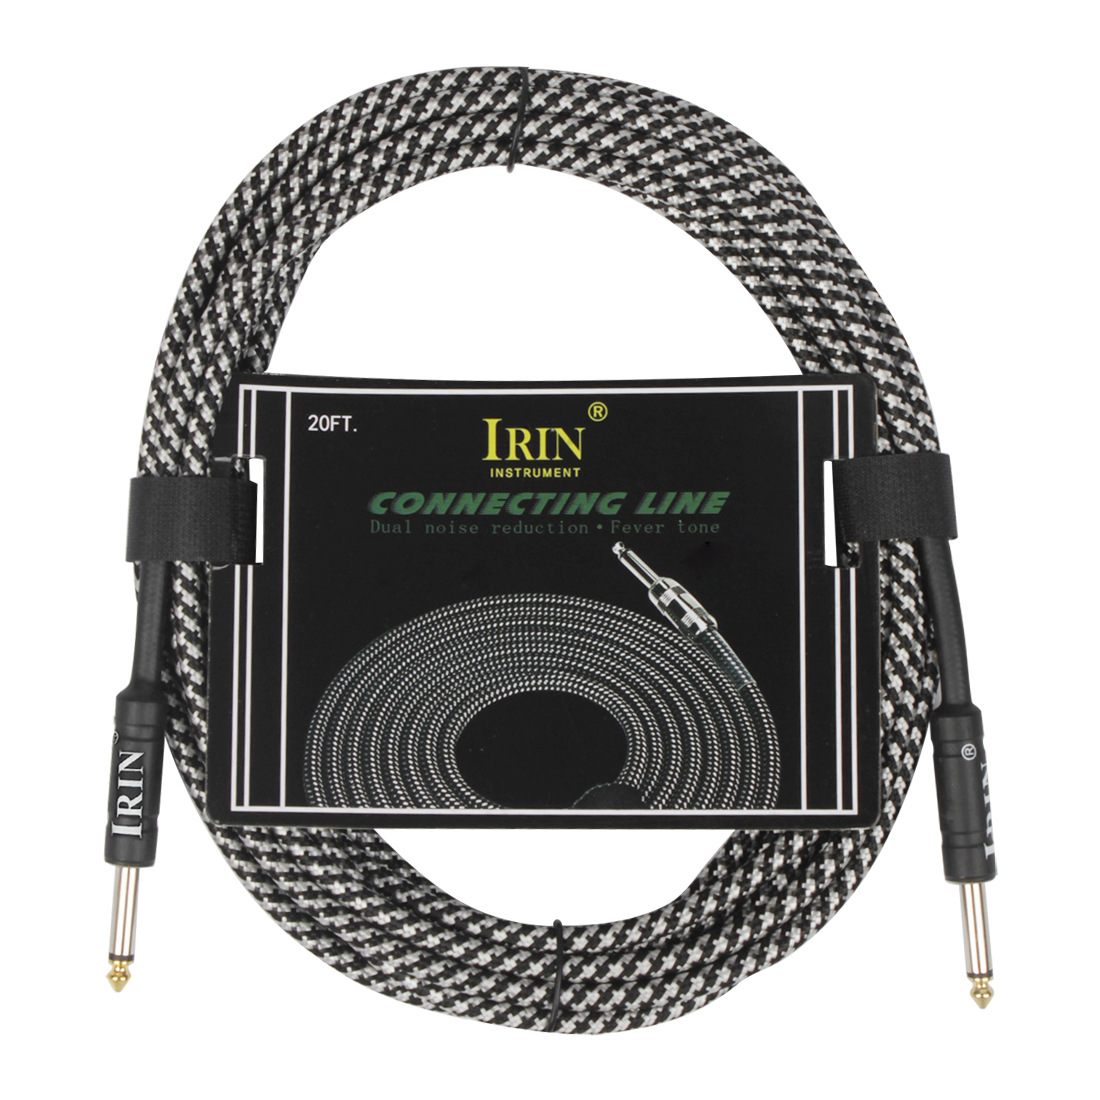 6M Cable Guitar Connecting Line Musical Instrument Accessories White 6 meters